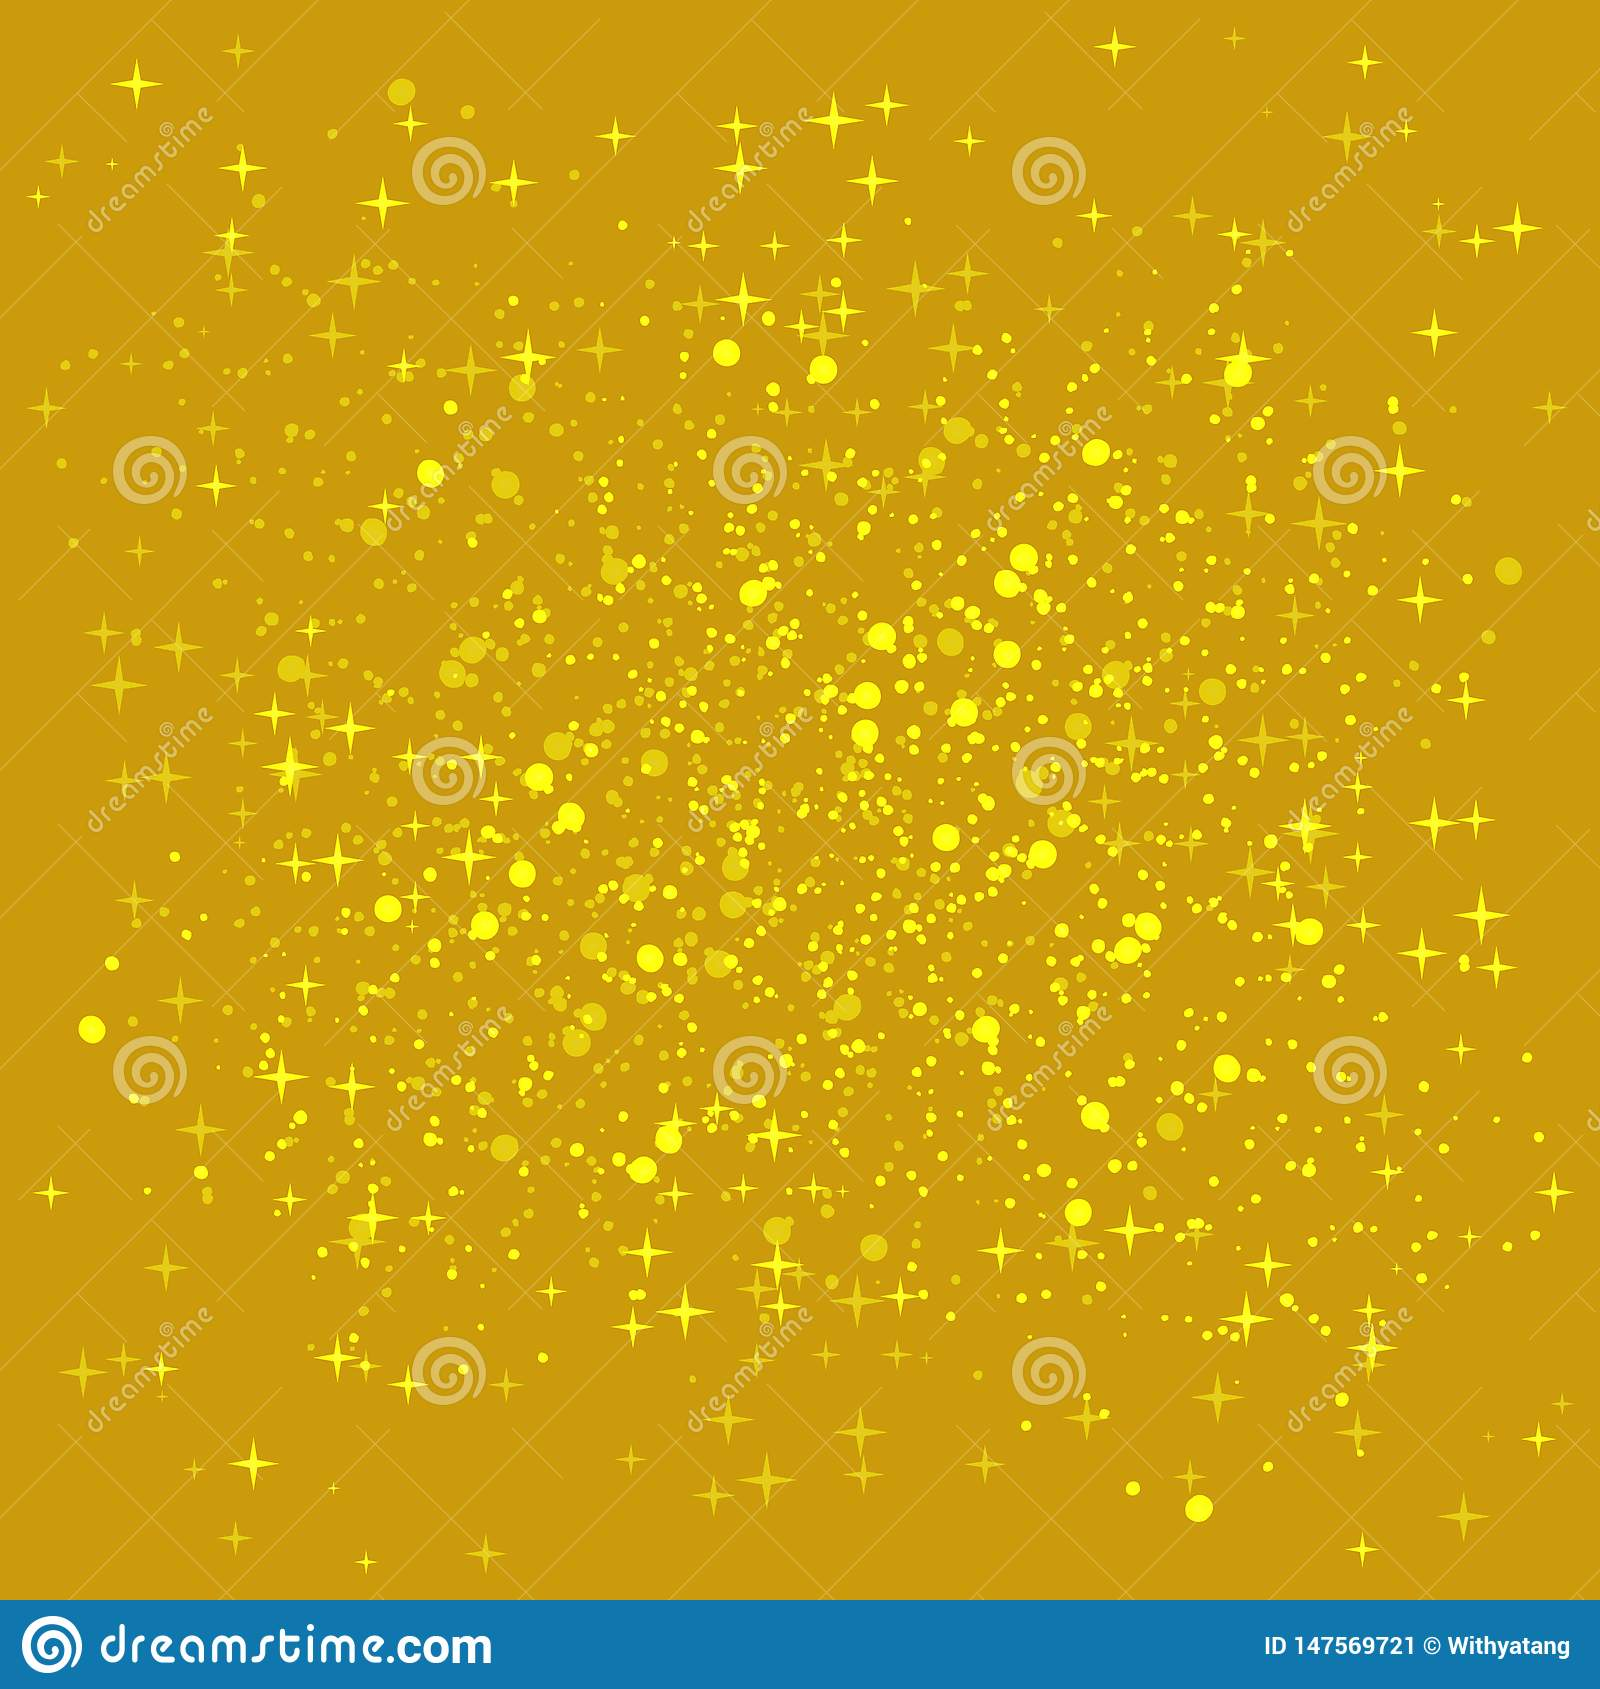 Golden shiny background.Gold sequins background. The golden sparkle on the border of the love shape.